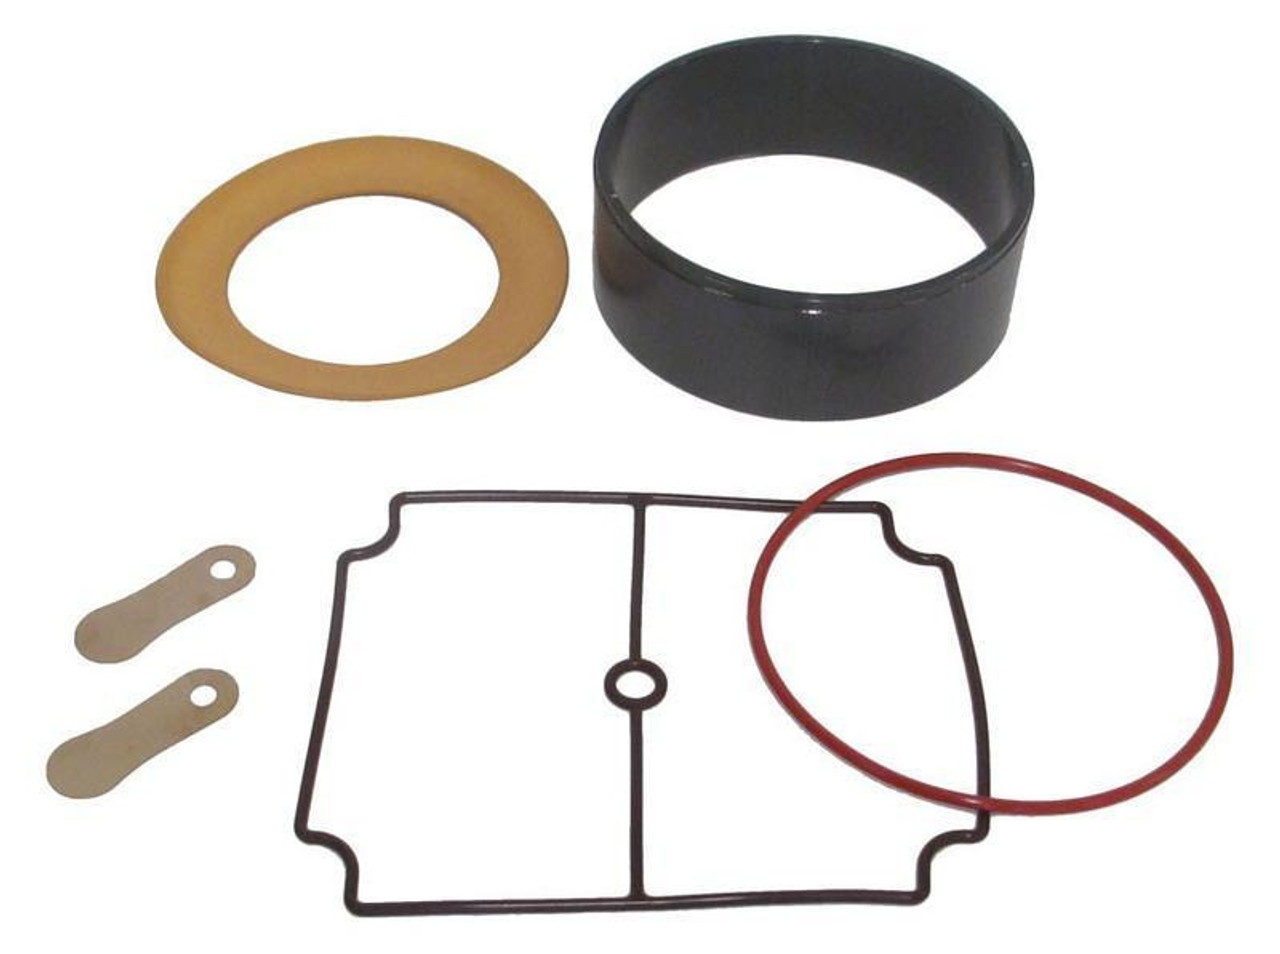 771180 Rebuild kit KM-60 1/4 HP Single head compressor